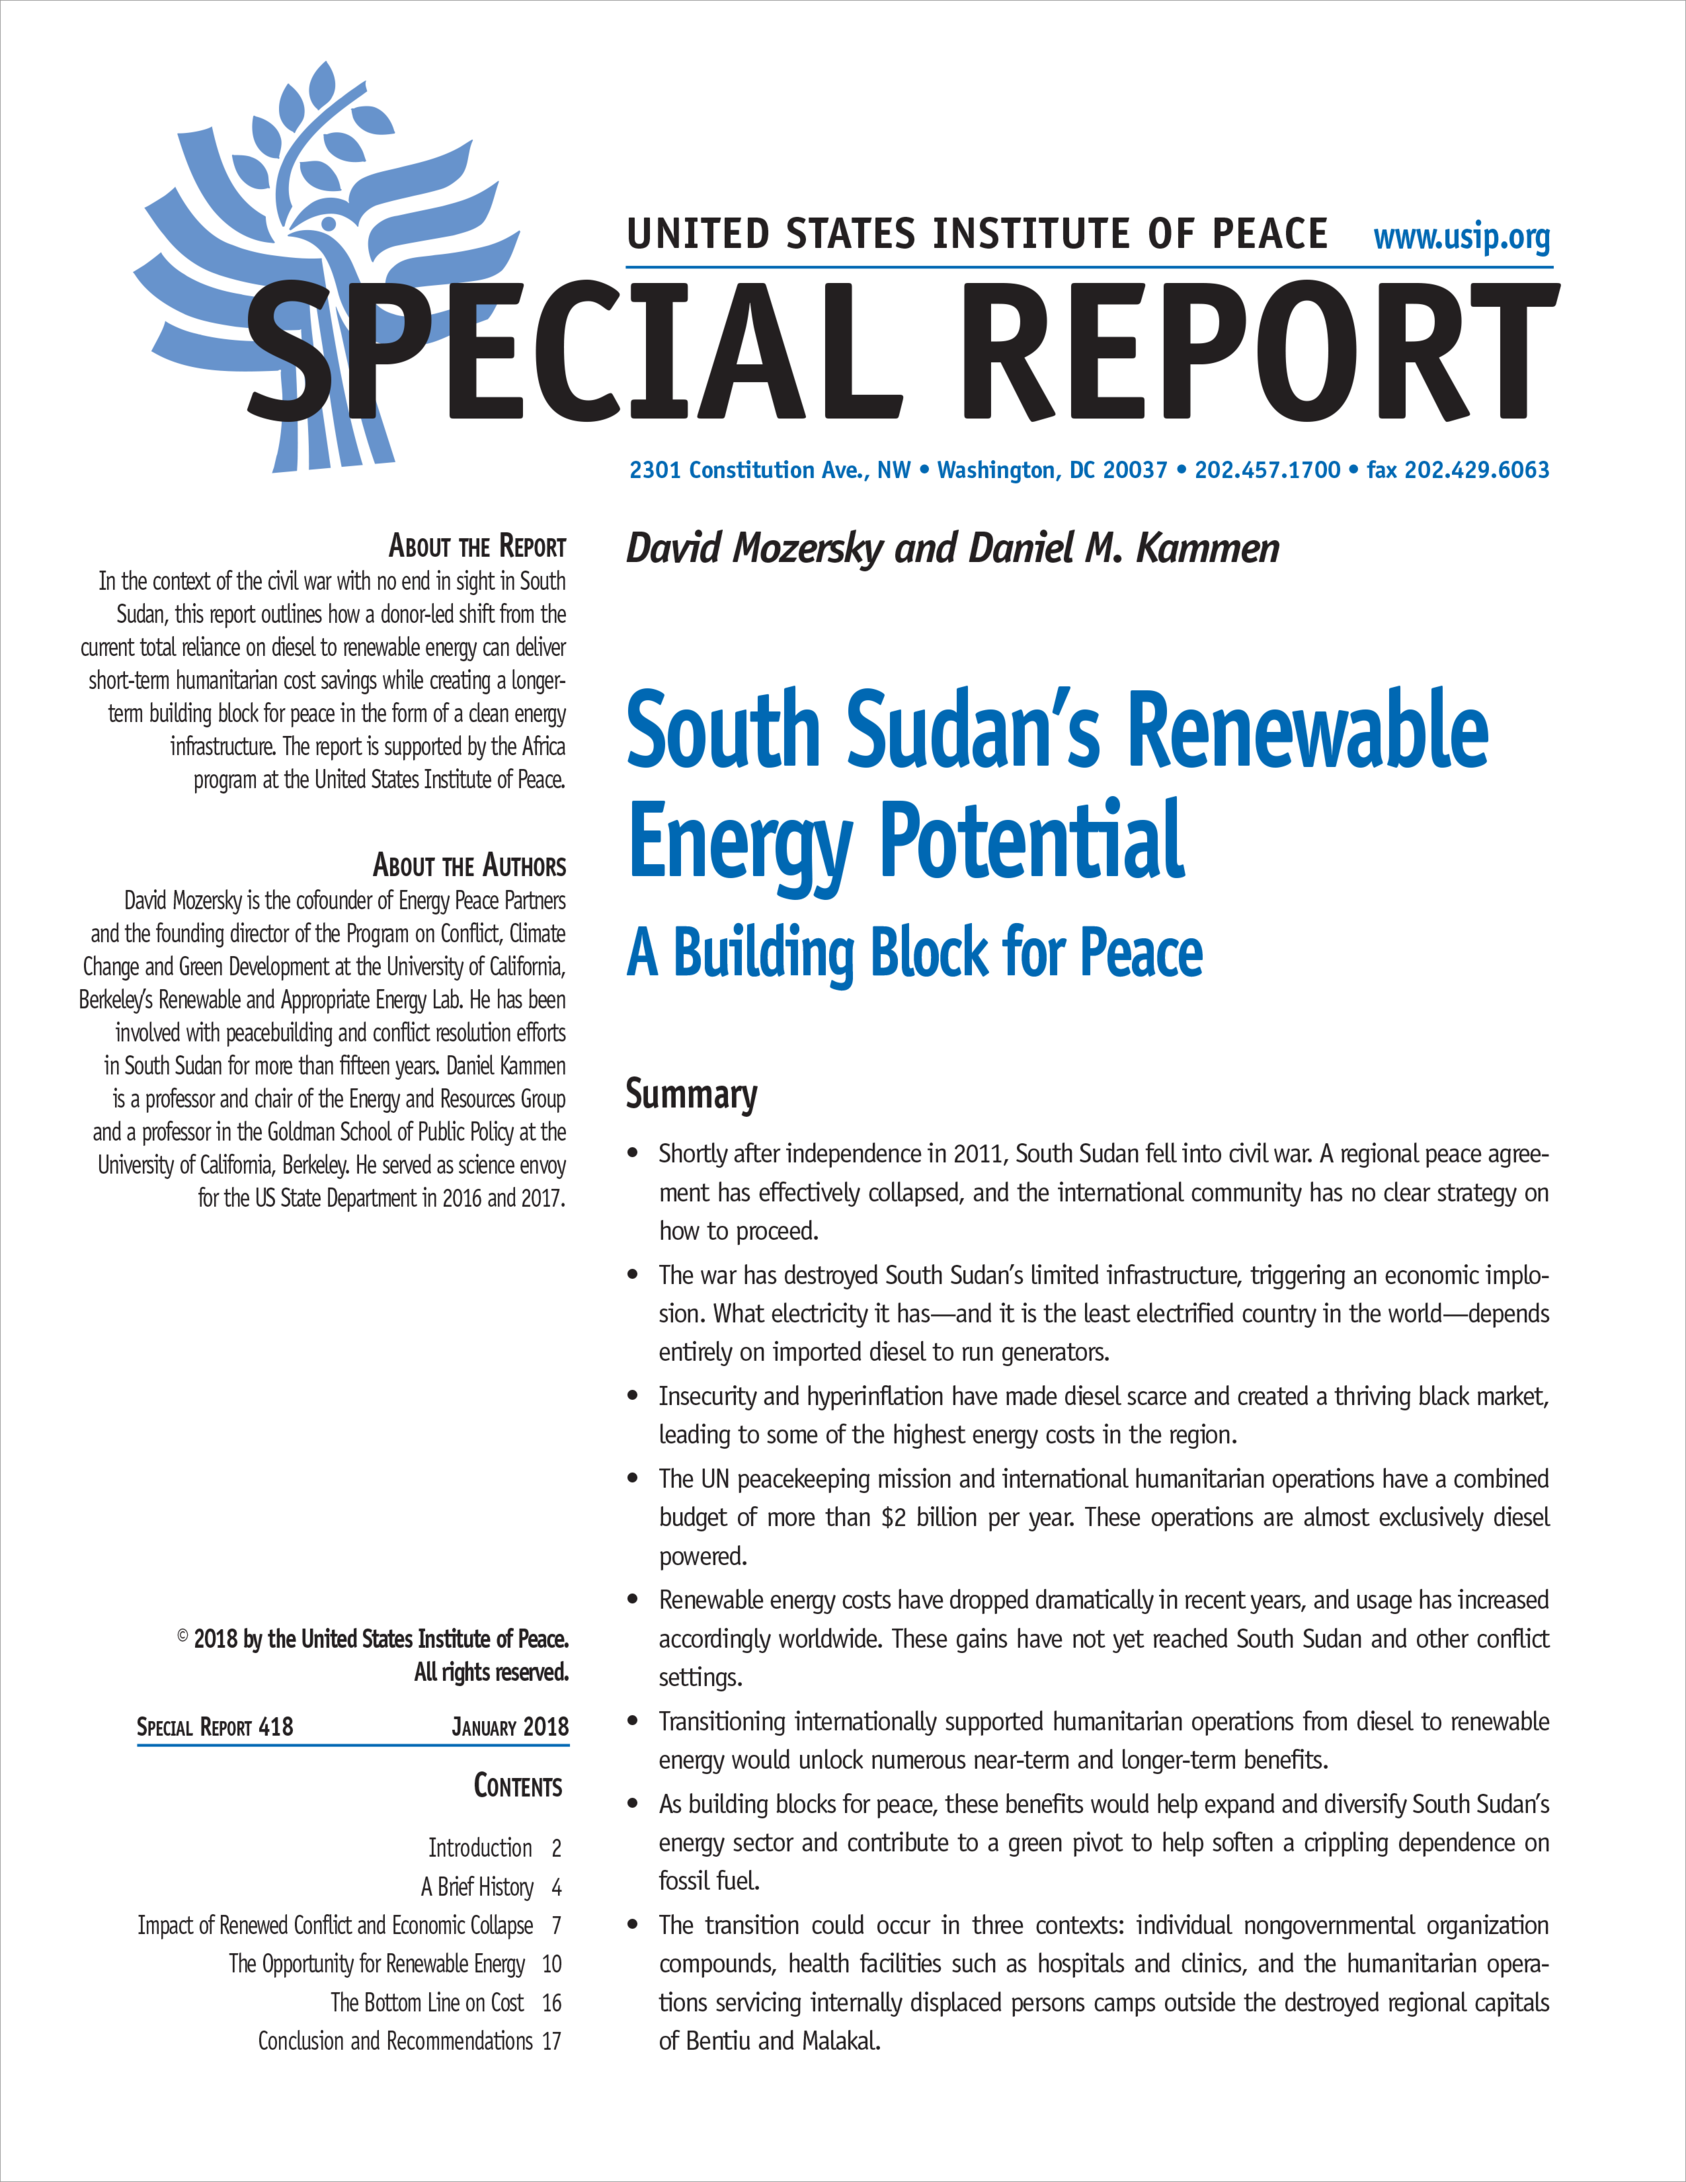 South Sudan's Renewable Energy Potential   United States Institute